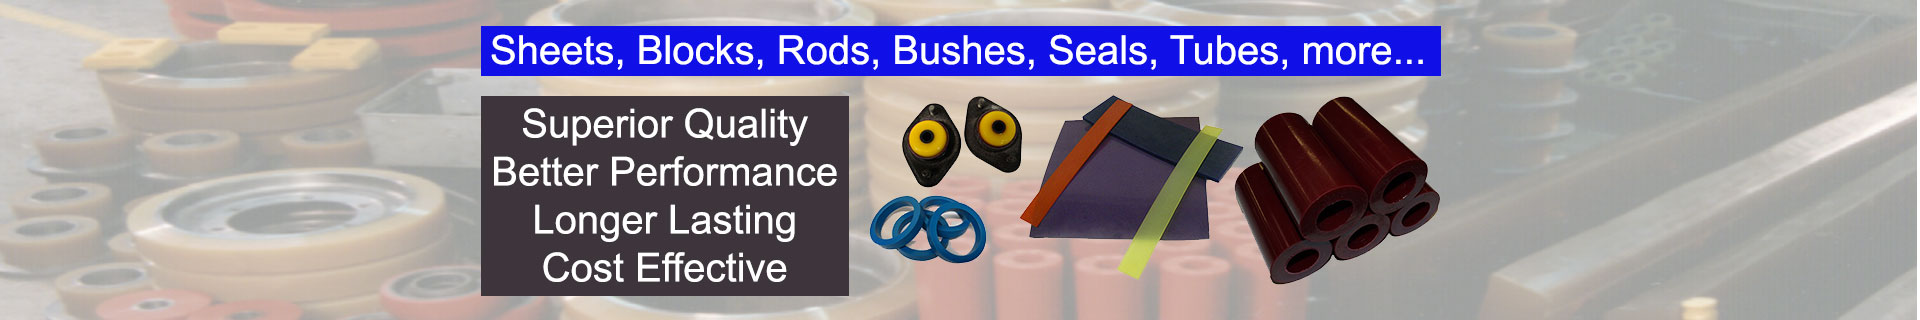 Polyurethane Sheets, Blocks, Rods, Tubes , Seals, Bushes, Rubber, Plastics